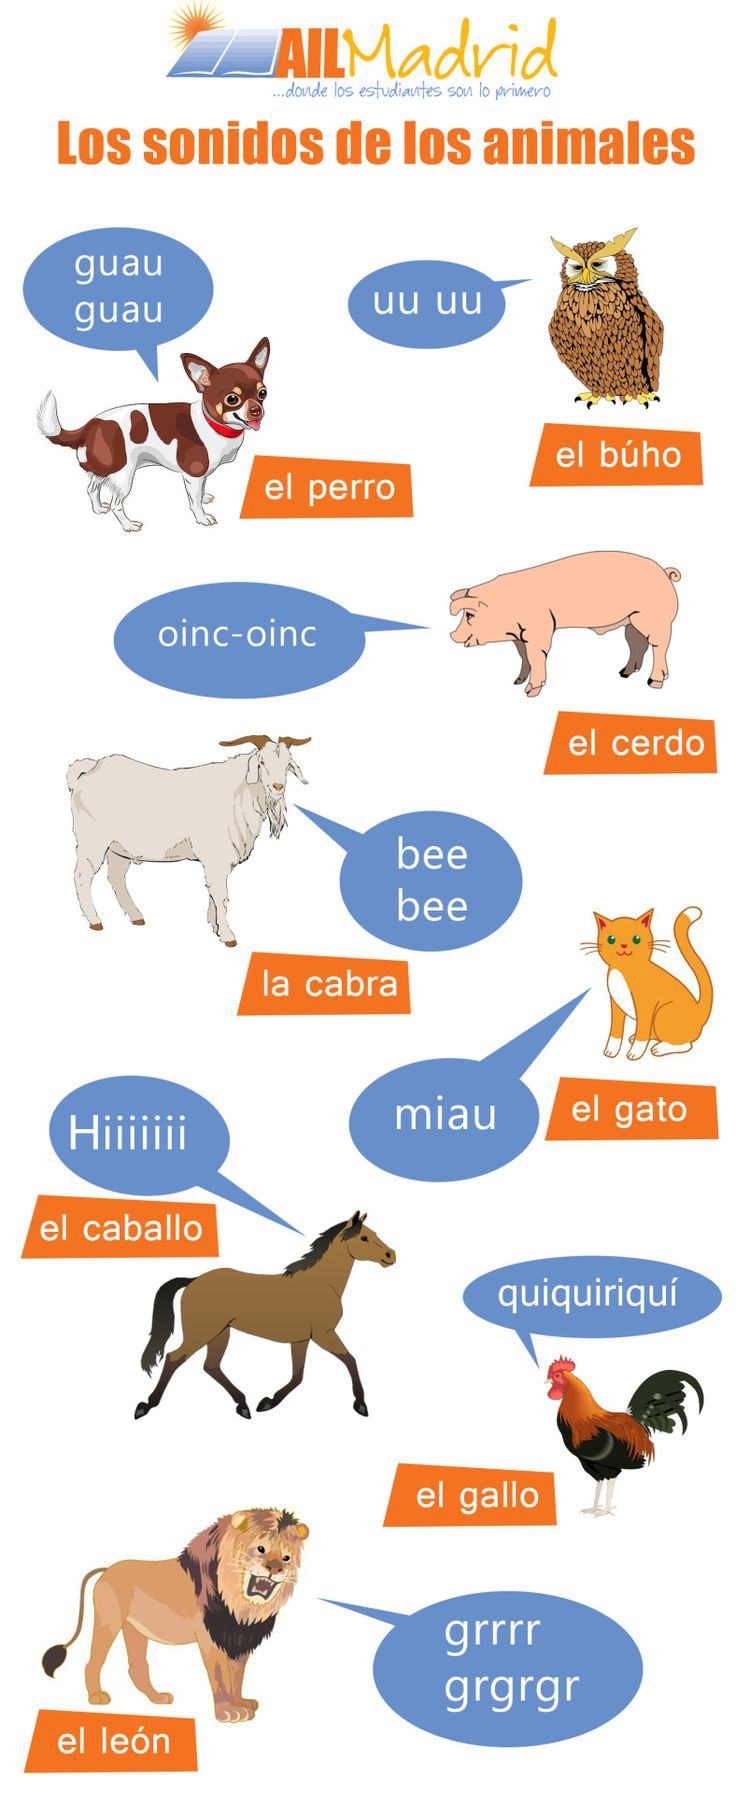 How to Learn Spanish in Spain - Vacation Like a Pro